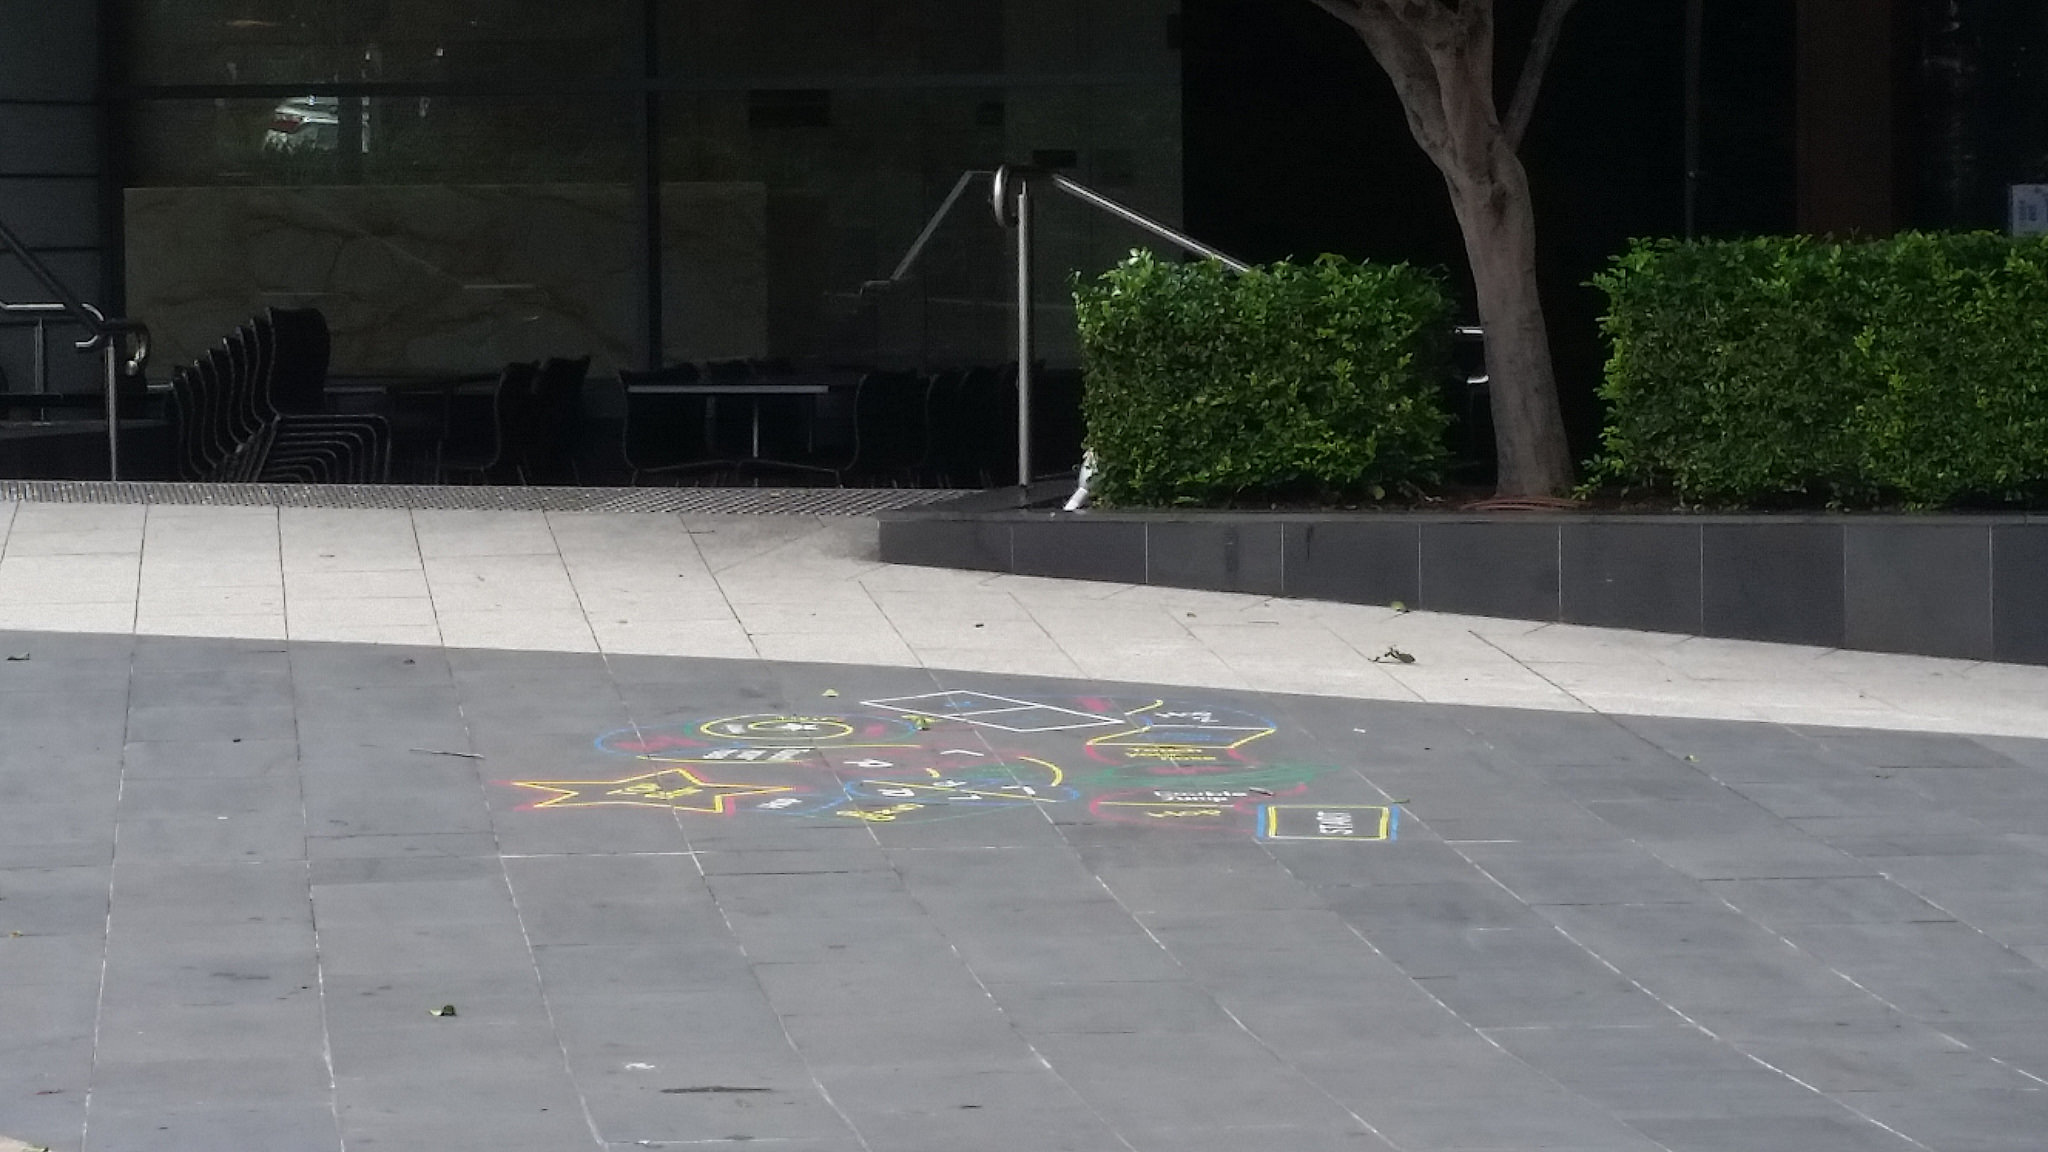 Painted floor for fun and games in the Piazza just outside Hurricanes grill